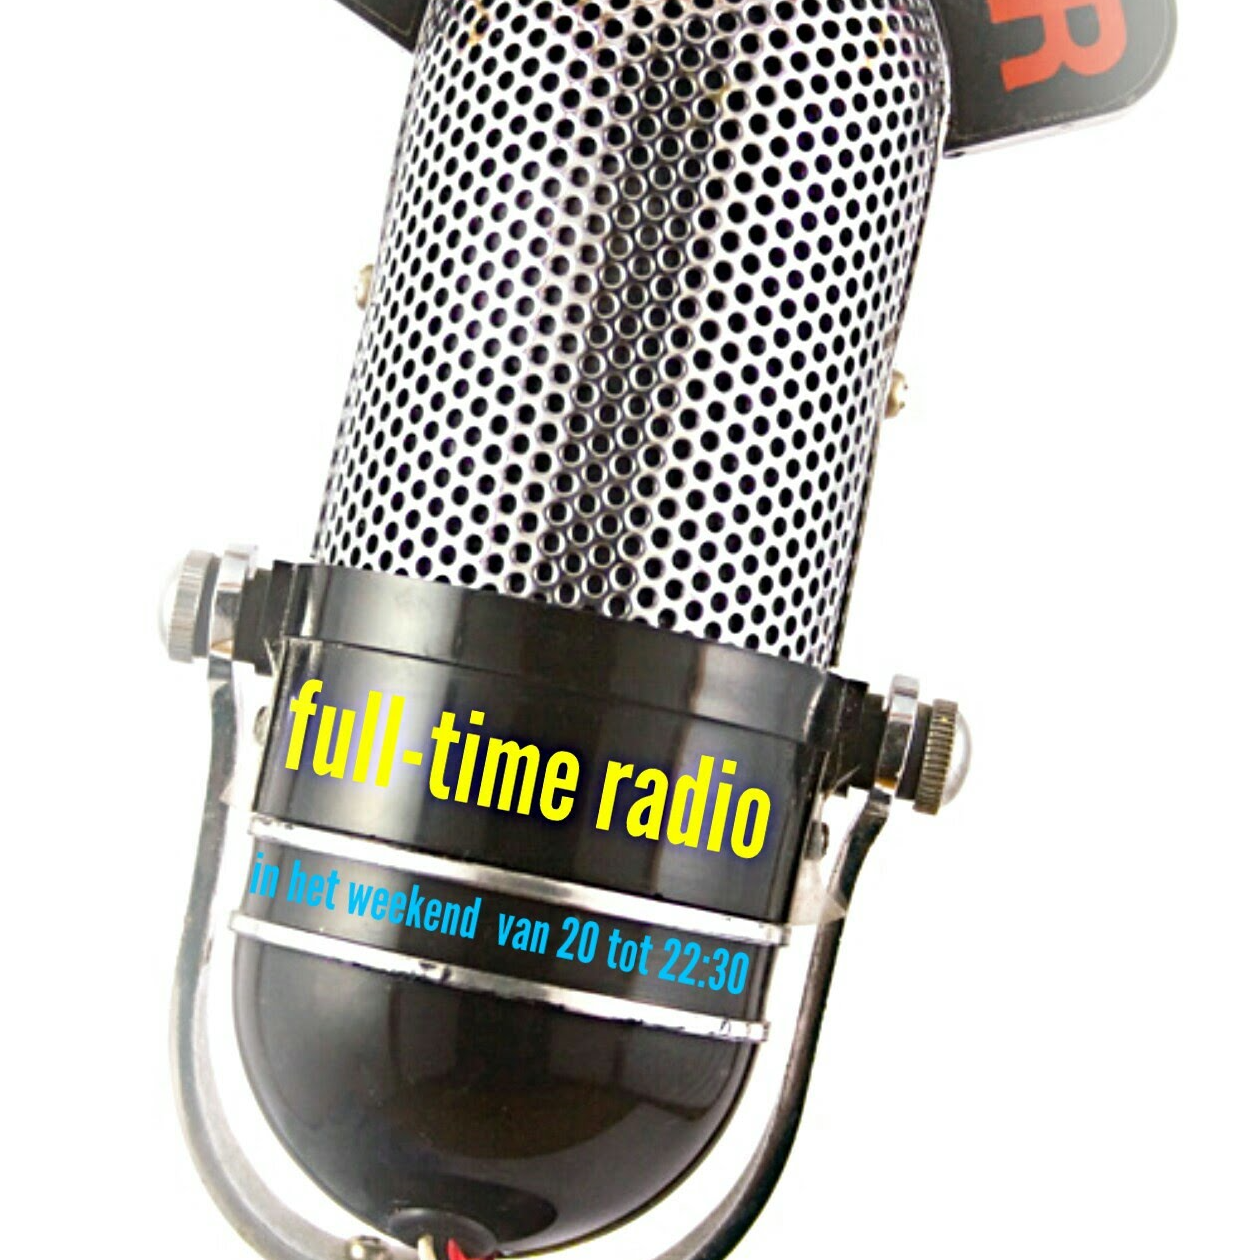 full-time radio